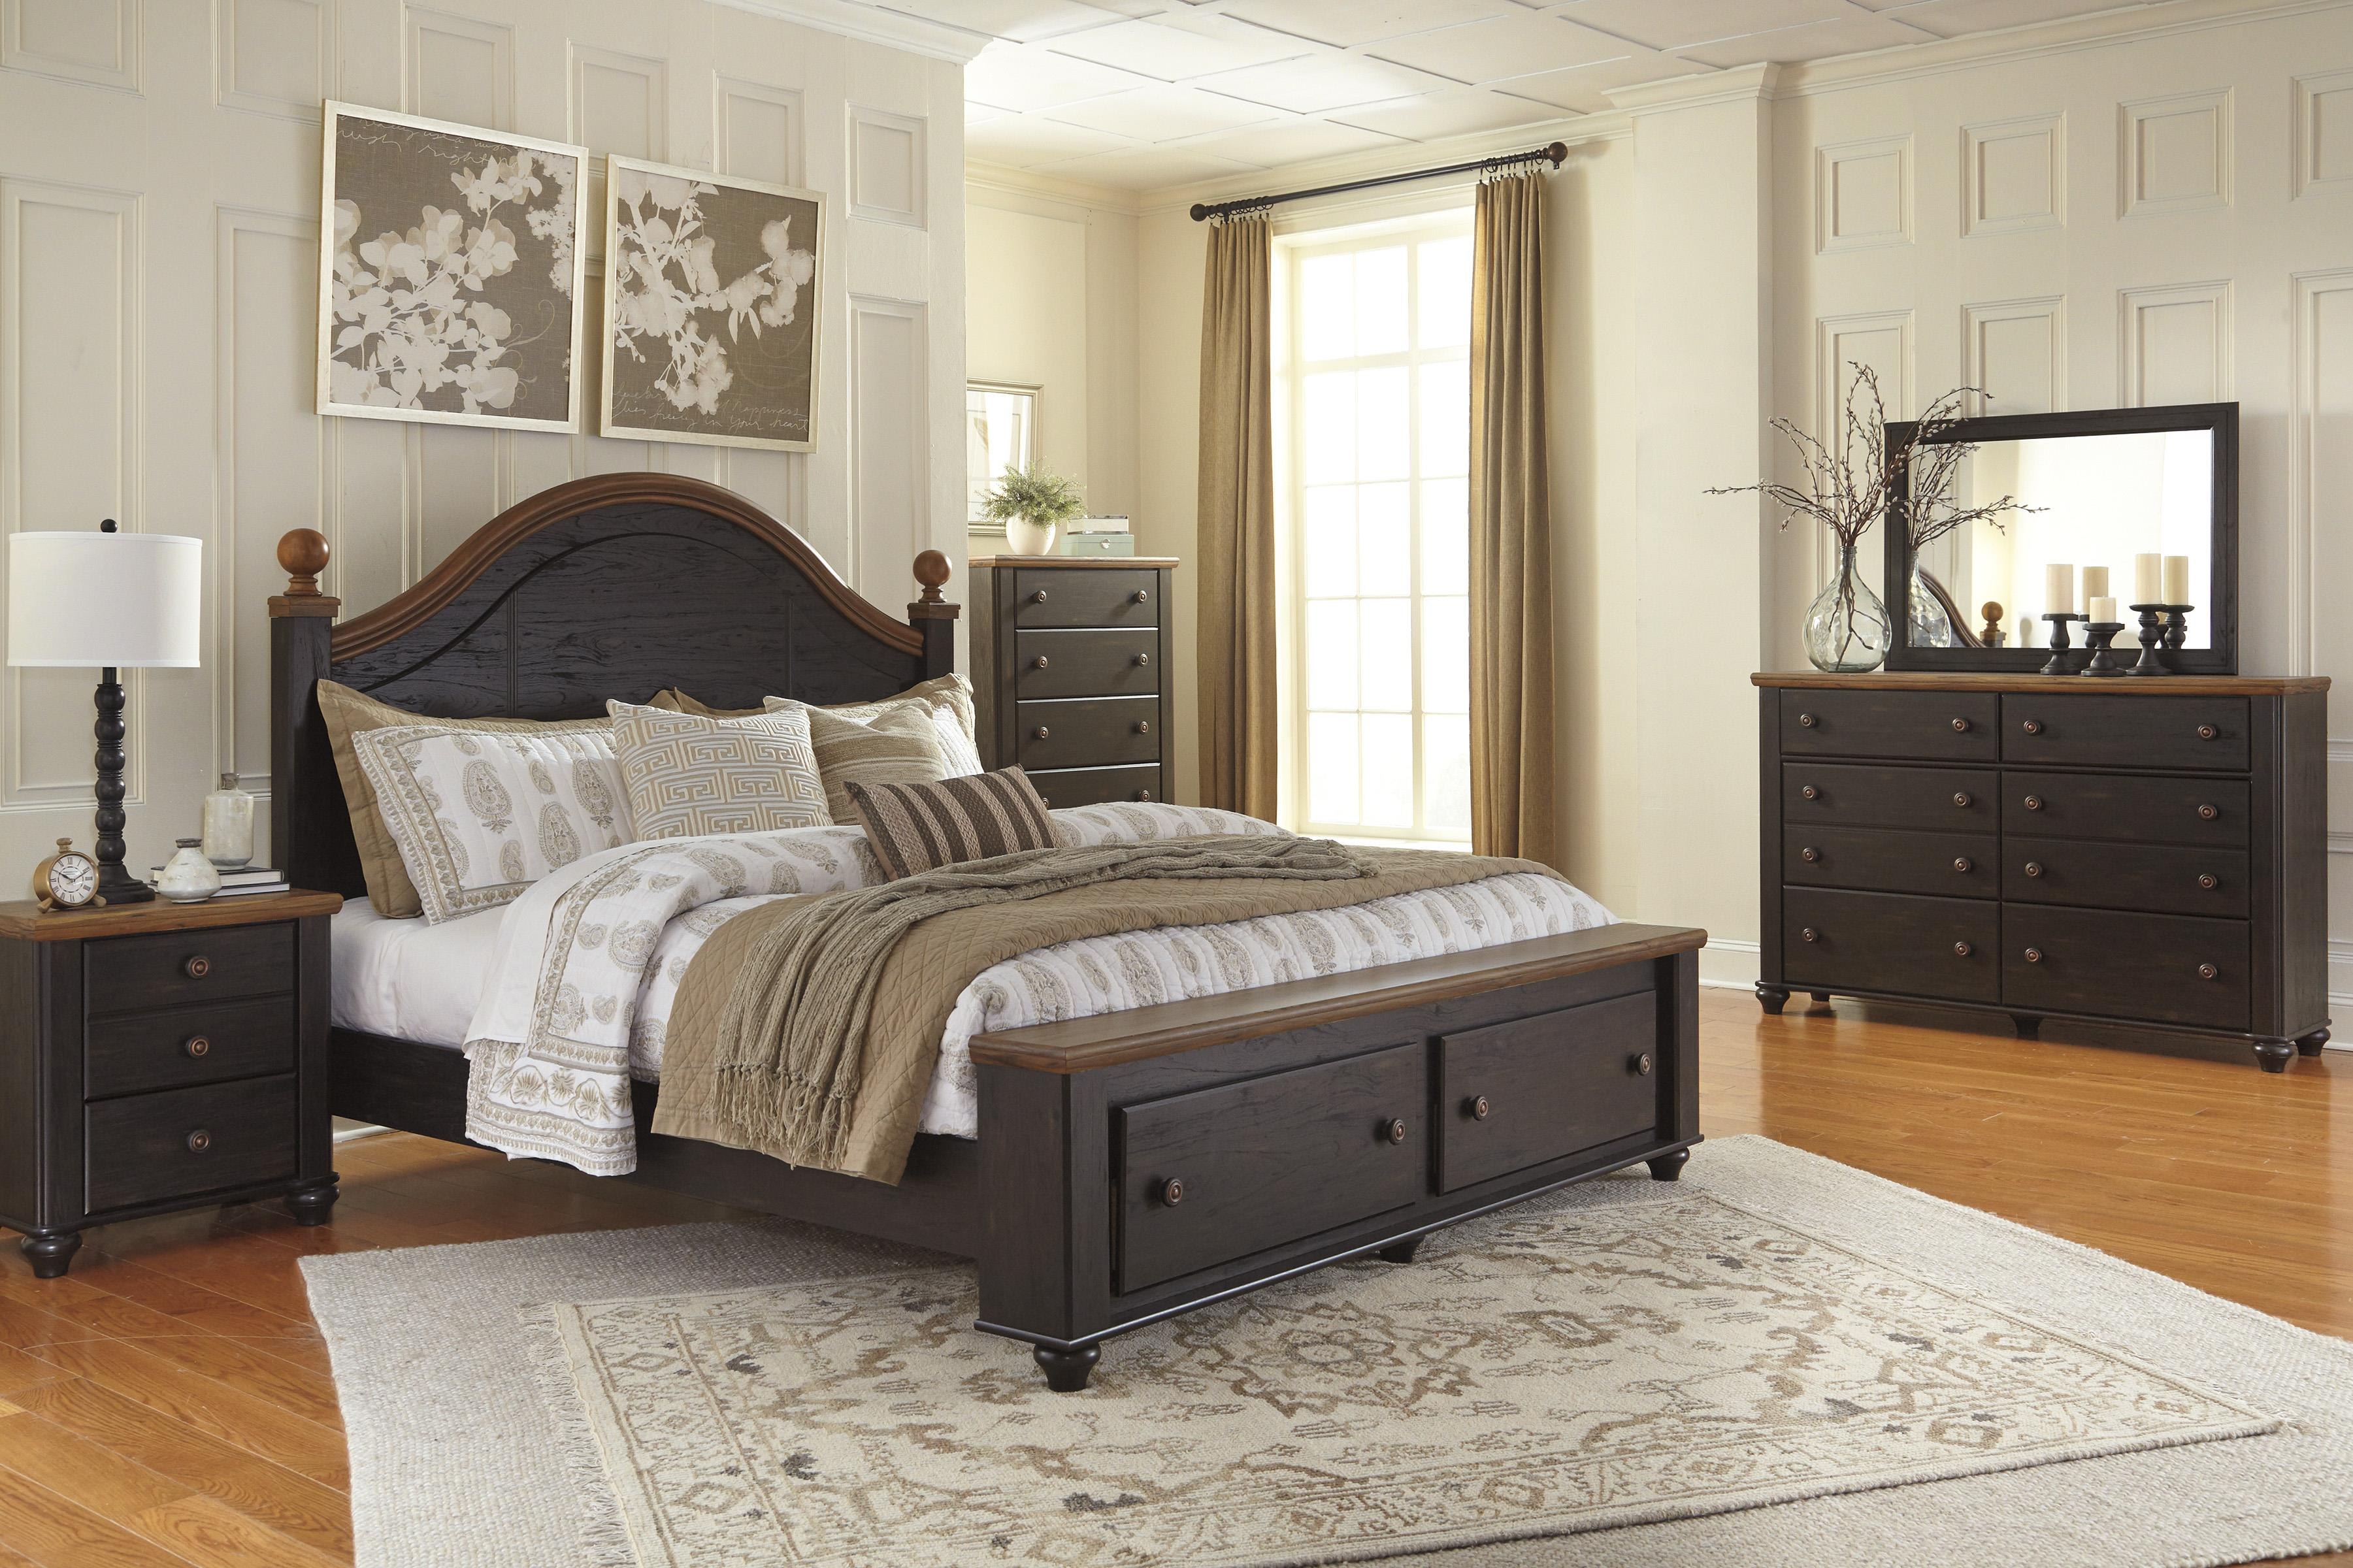 Signature Design by Ashley Maxington Queen Platform Bed with